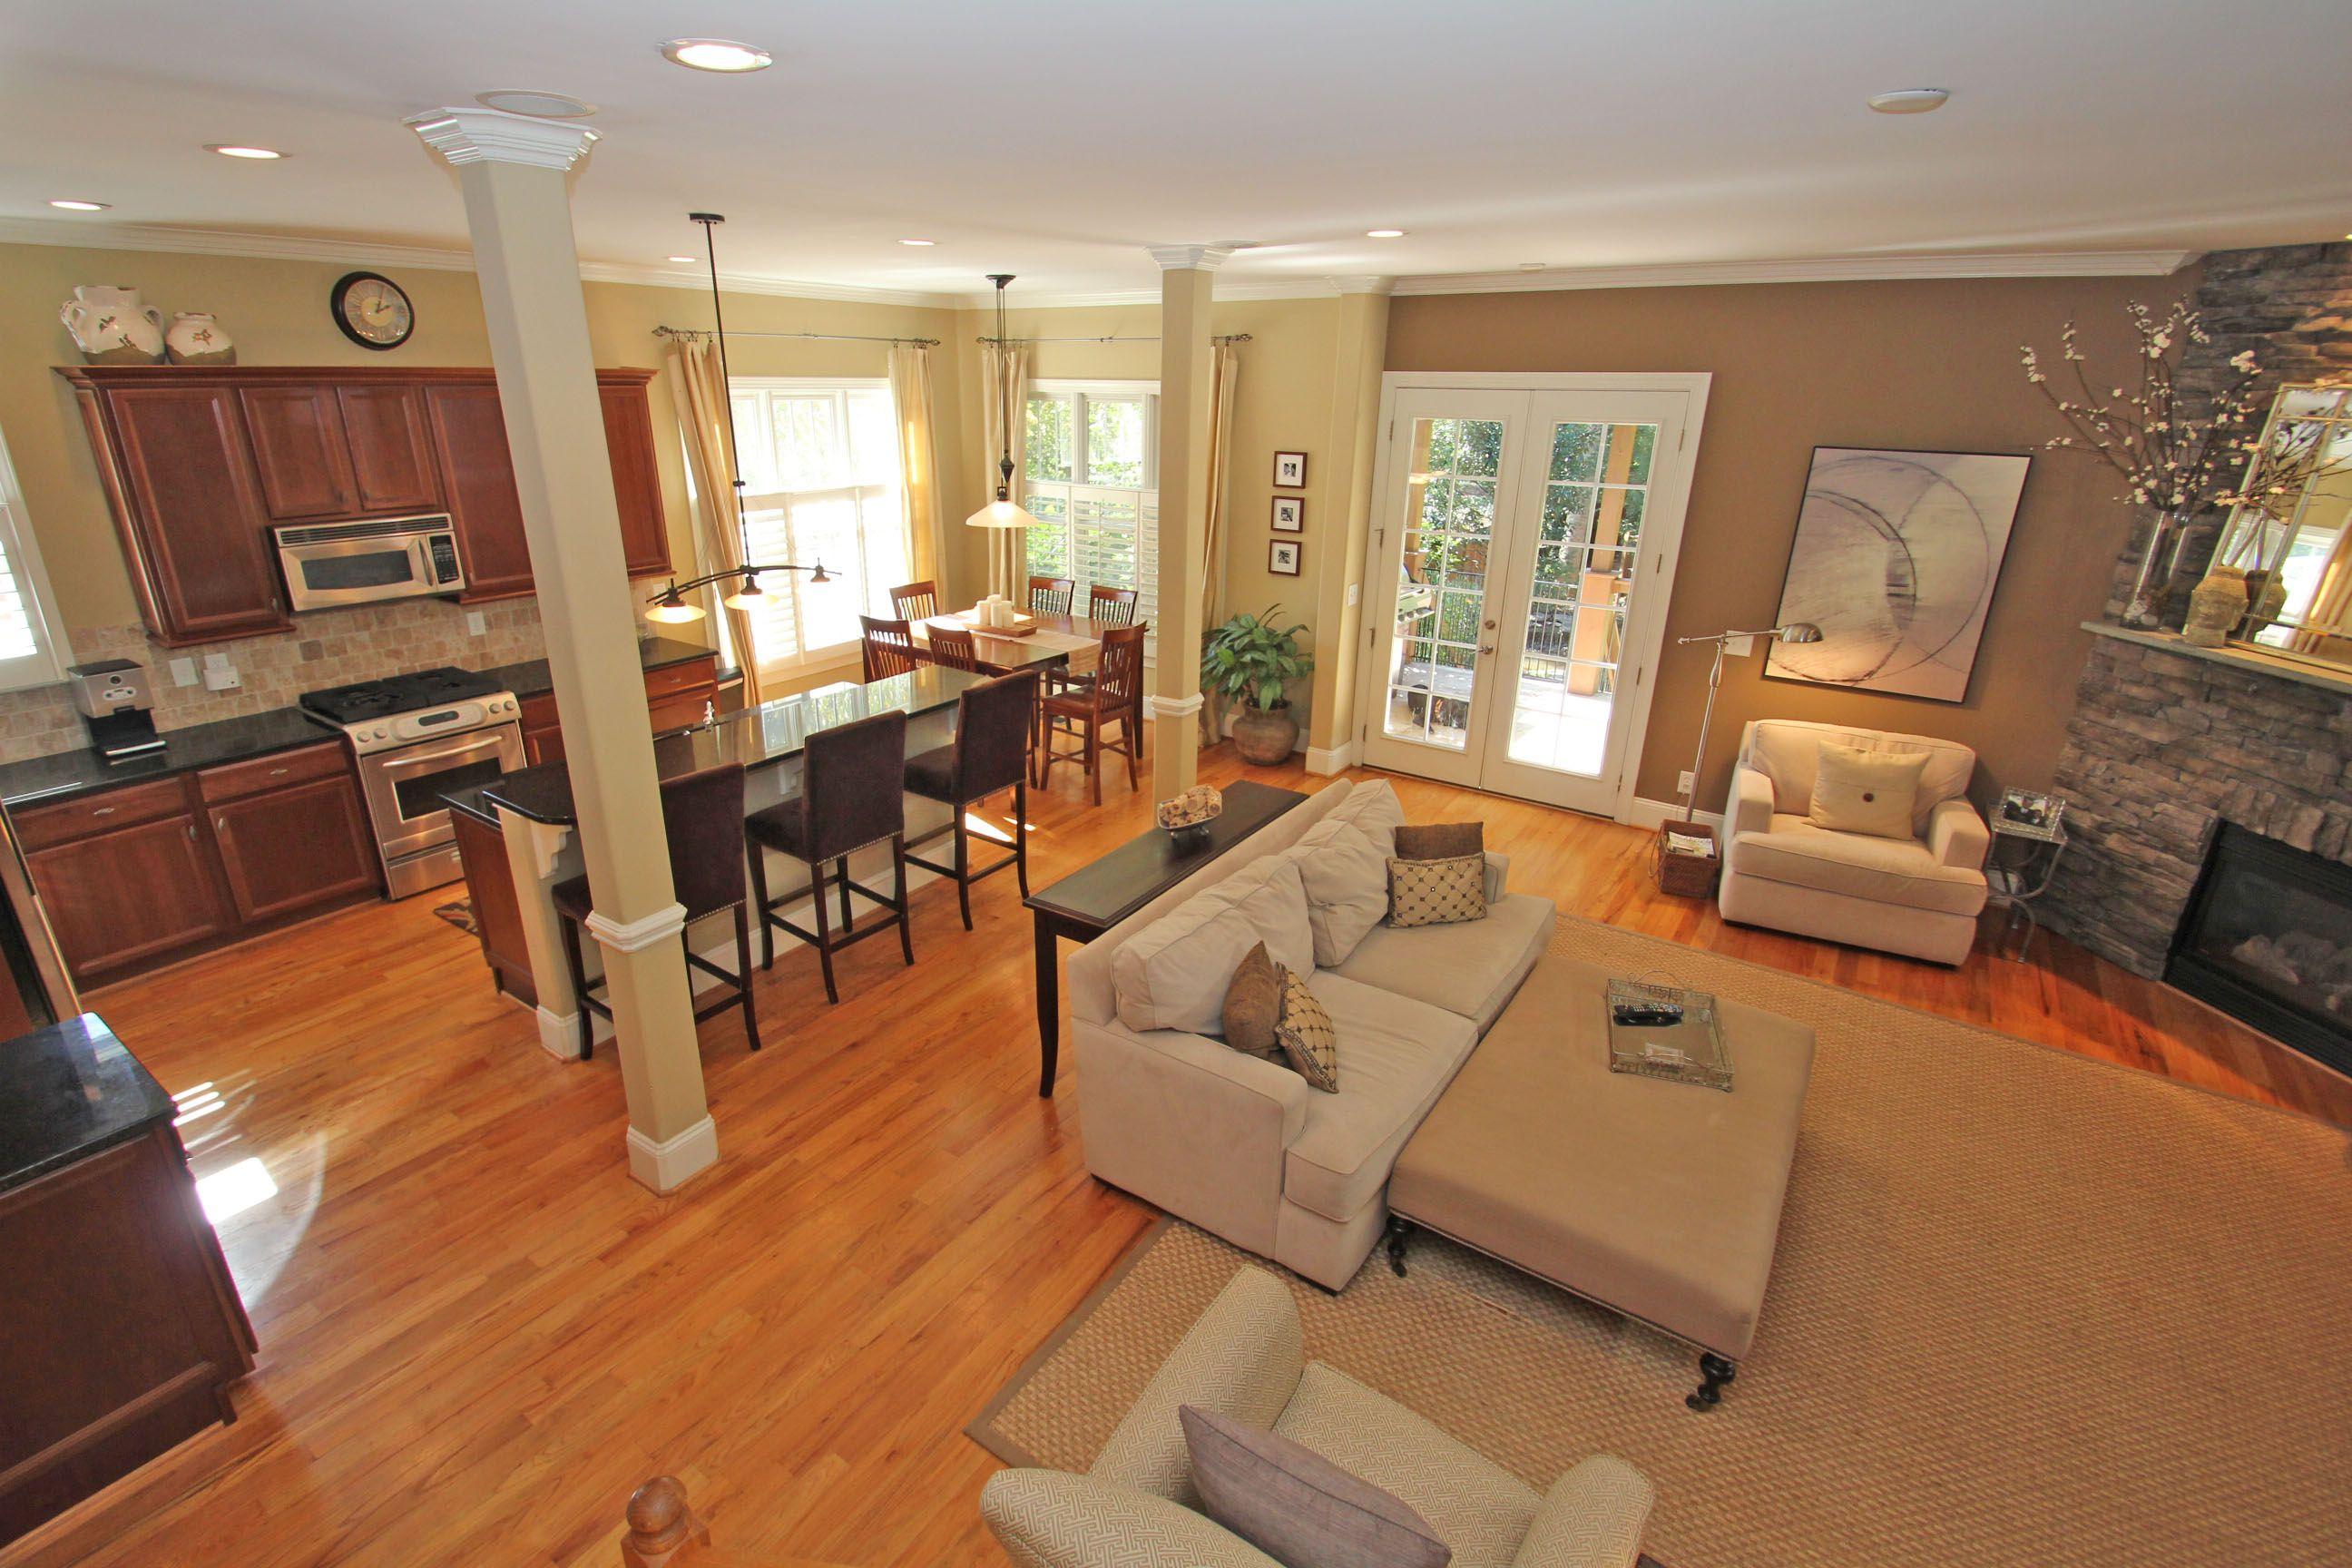 Kitchen And Dining Room Floor Plans